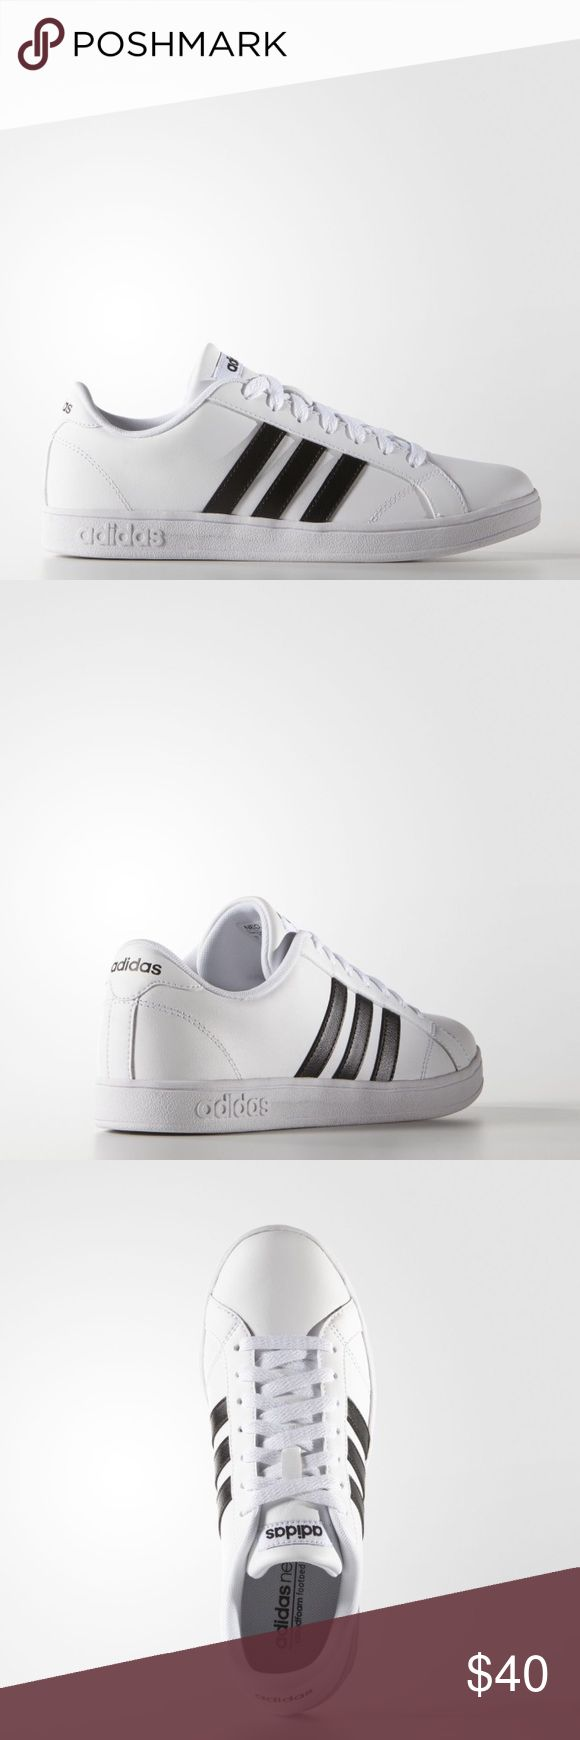 White Adidas NEO Shoes Gently used and still have a lot of life in them! Fits true to size adidas Shoes Sneakers